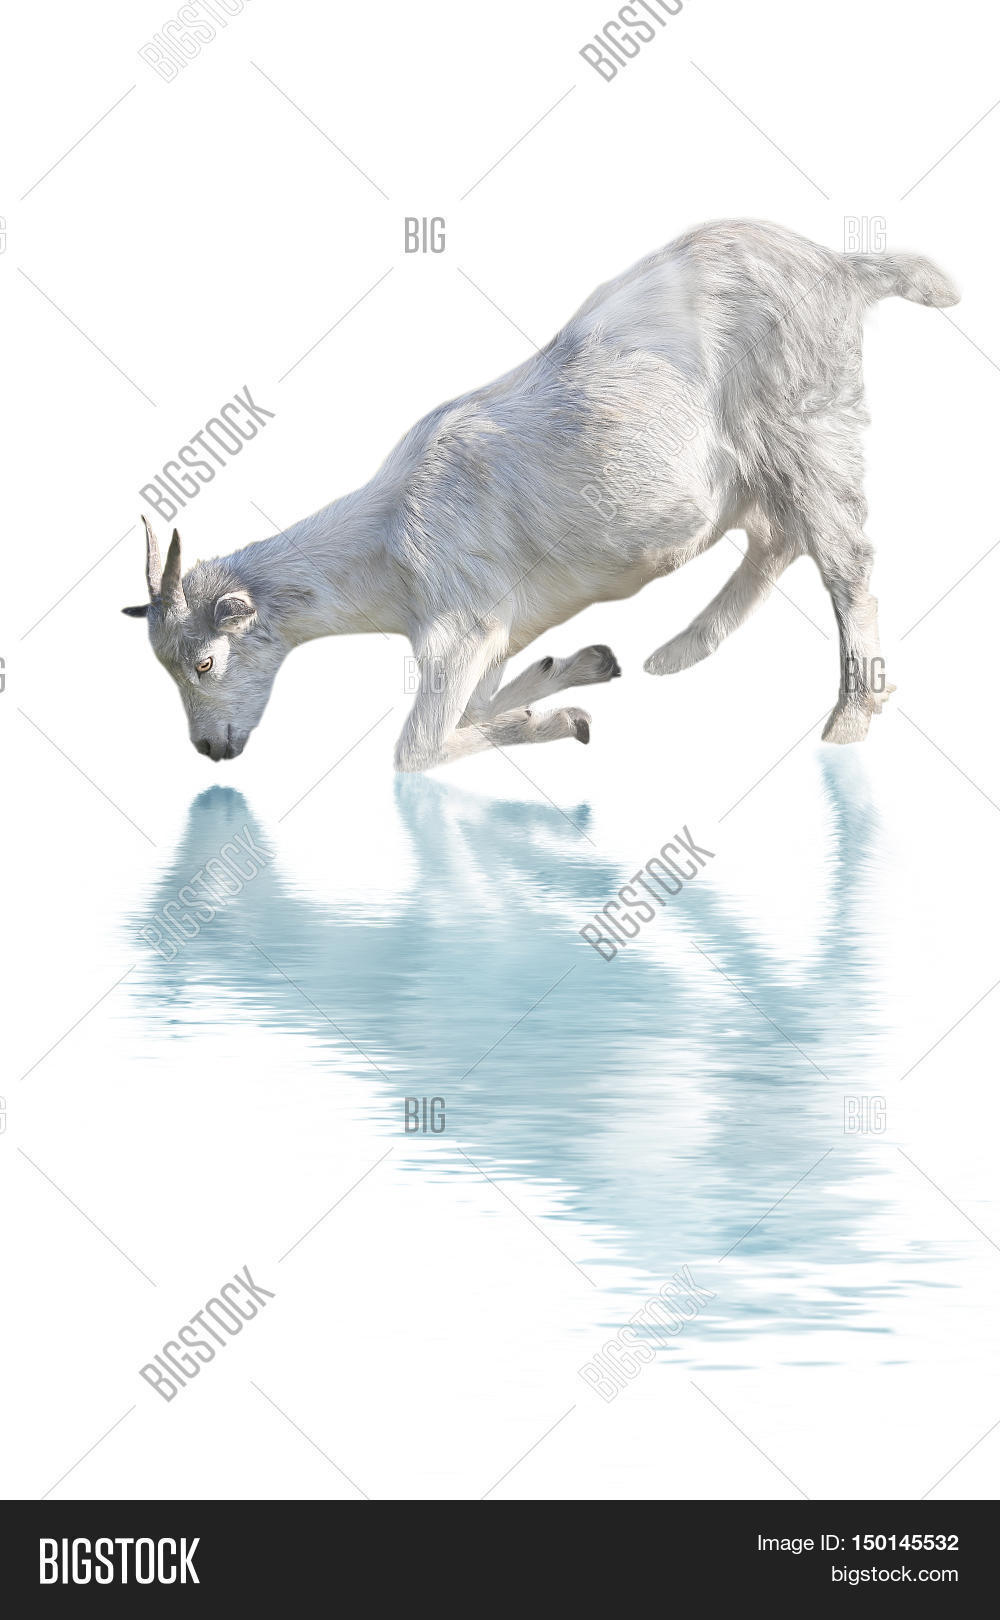 goat drink water image photo free trial bigstock